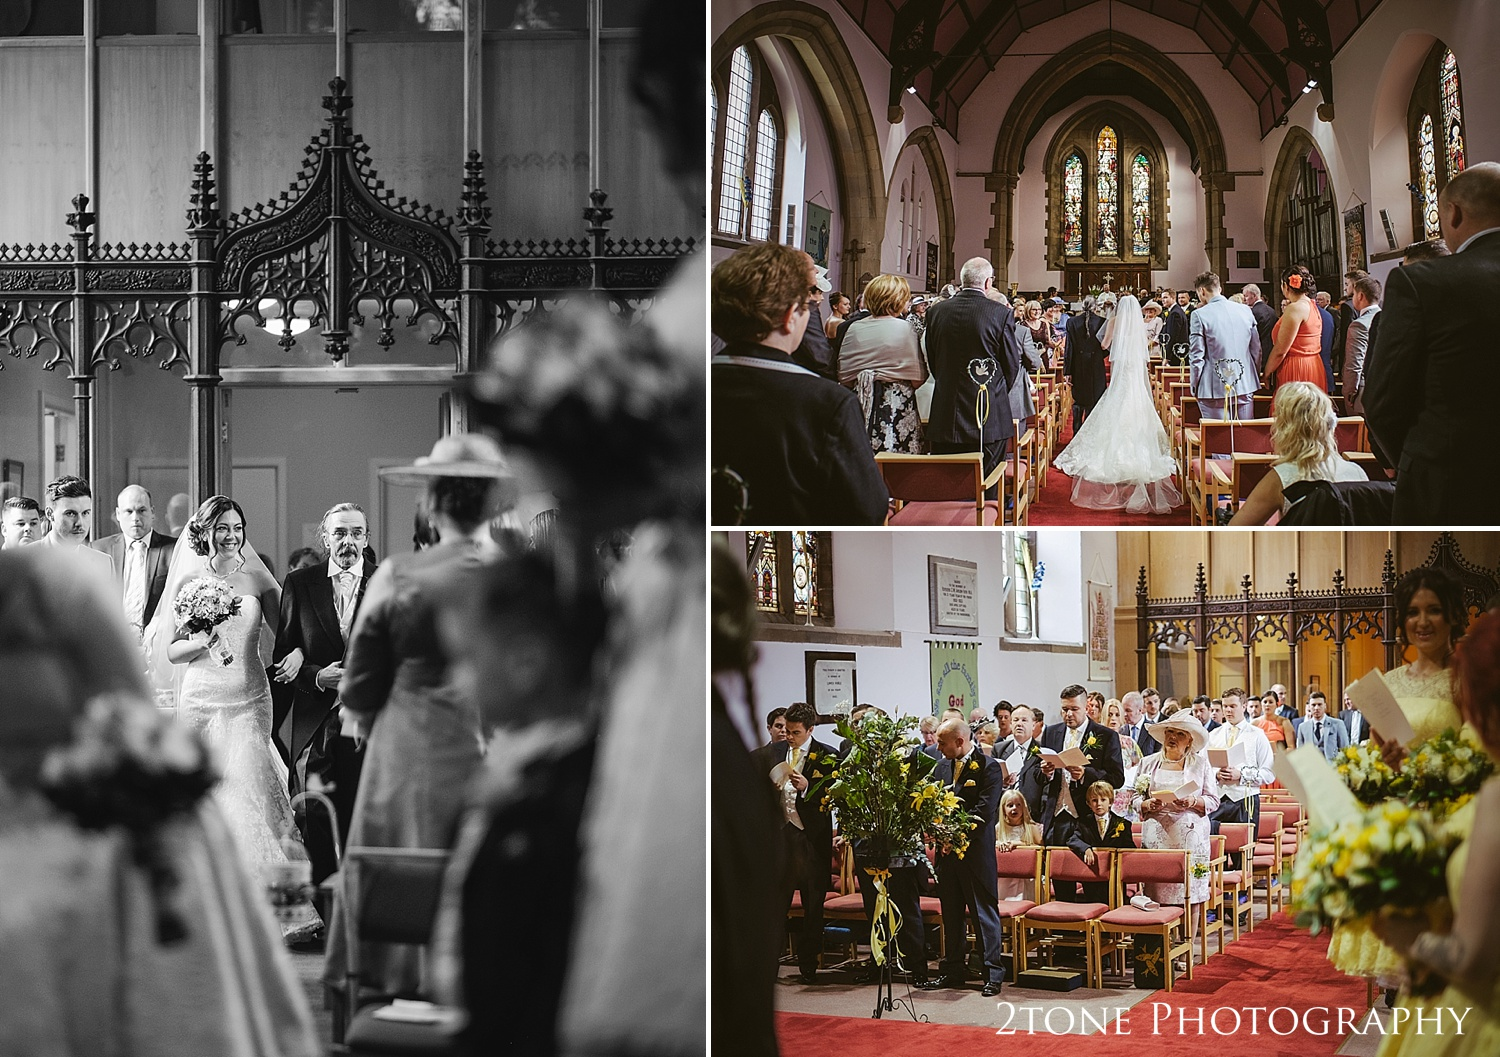 Natural wedding photography, Church weddings in Seaham by Wedding Photographers based in Durham, www.2tonephotography.co.uk